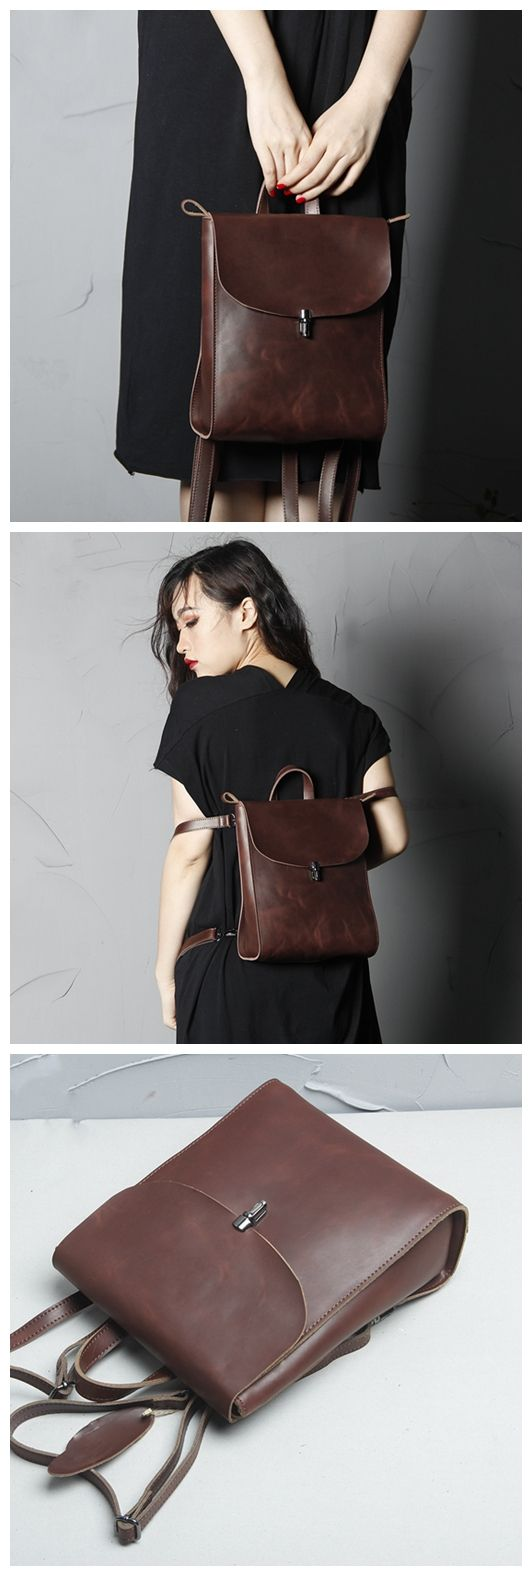 WOMEN BACKPACK, HANDCRAFTED BACKPACK, CUSTOM ORDER, WOMEN FASHION, LEATHER BACKPACK FOR GIRLS, LEATHER DESIGN,LEATHER ART